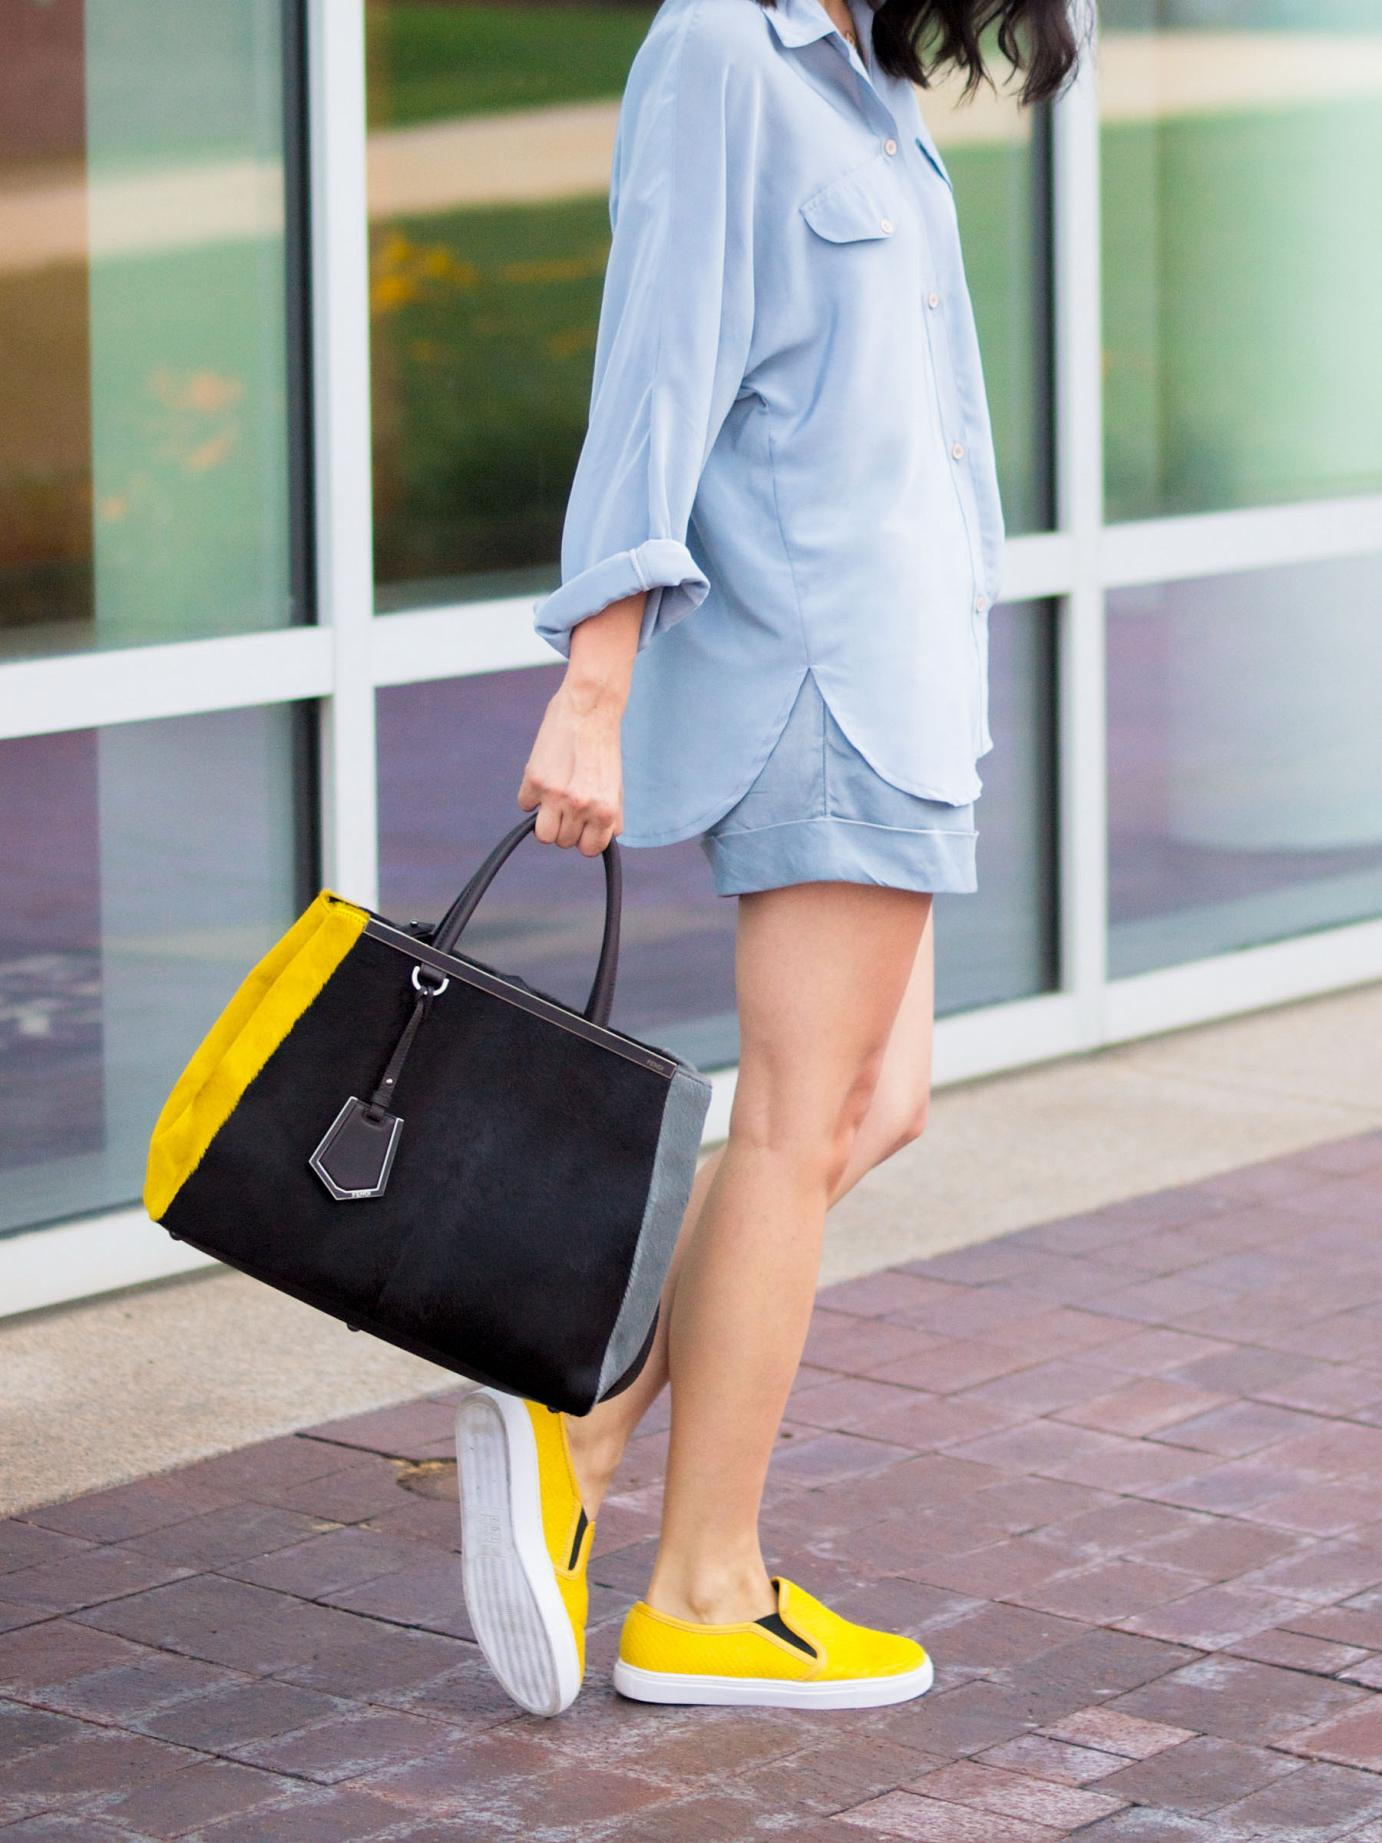 bittersweet colours, 3.1 phillip lim, 2jours bicolor fendi bag, fendi bag, grey outfit, asos sneakers, sneakers trend, k-kane jewelry, street style, silk shirt, summer style,  yellow sneakers